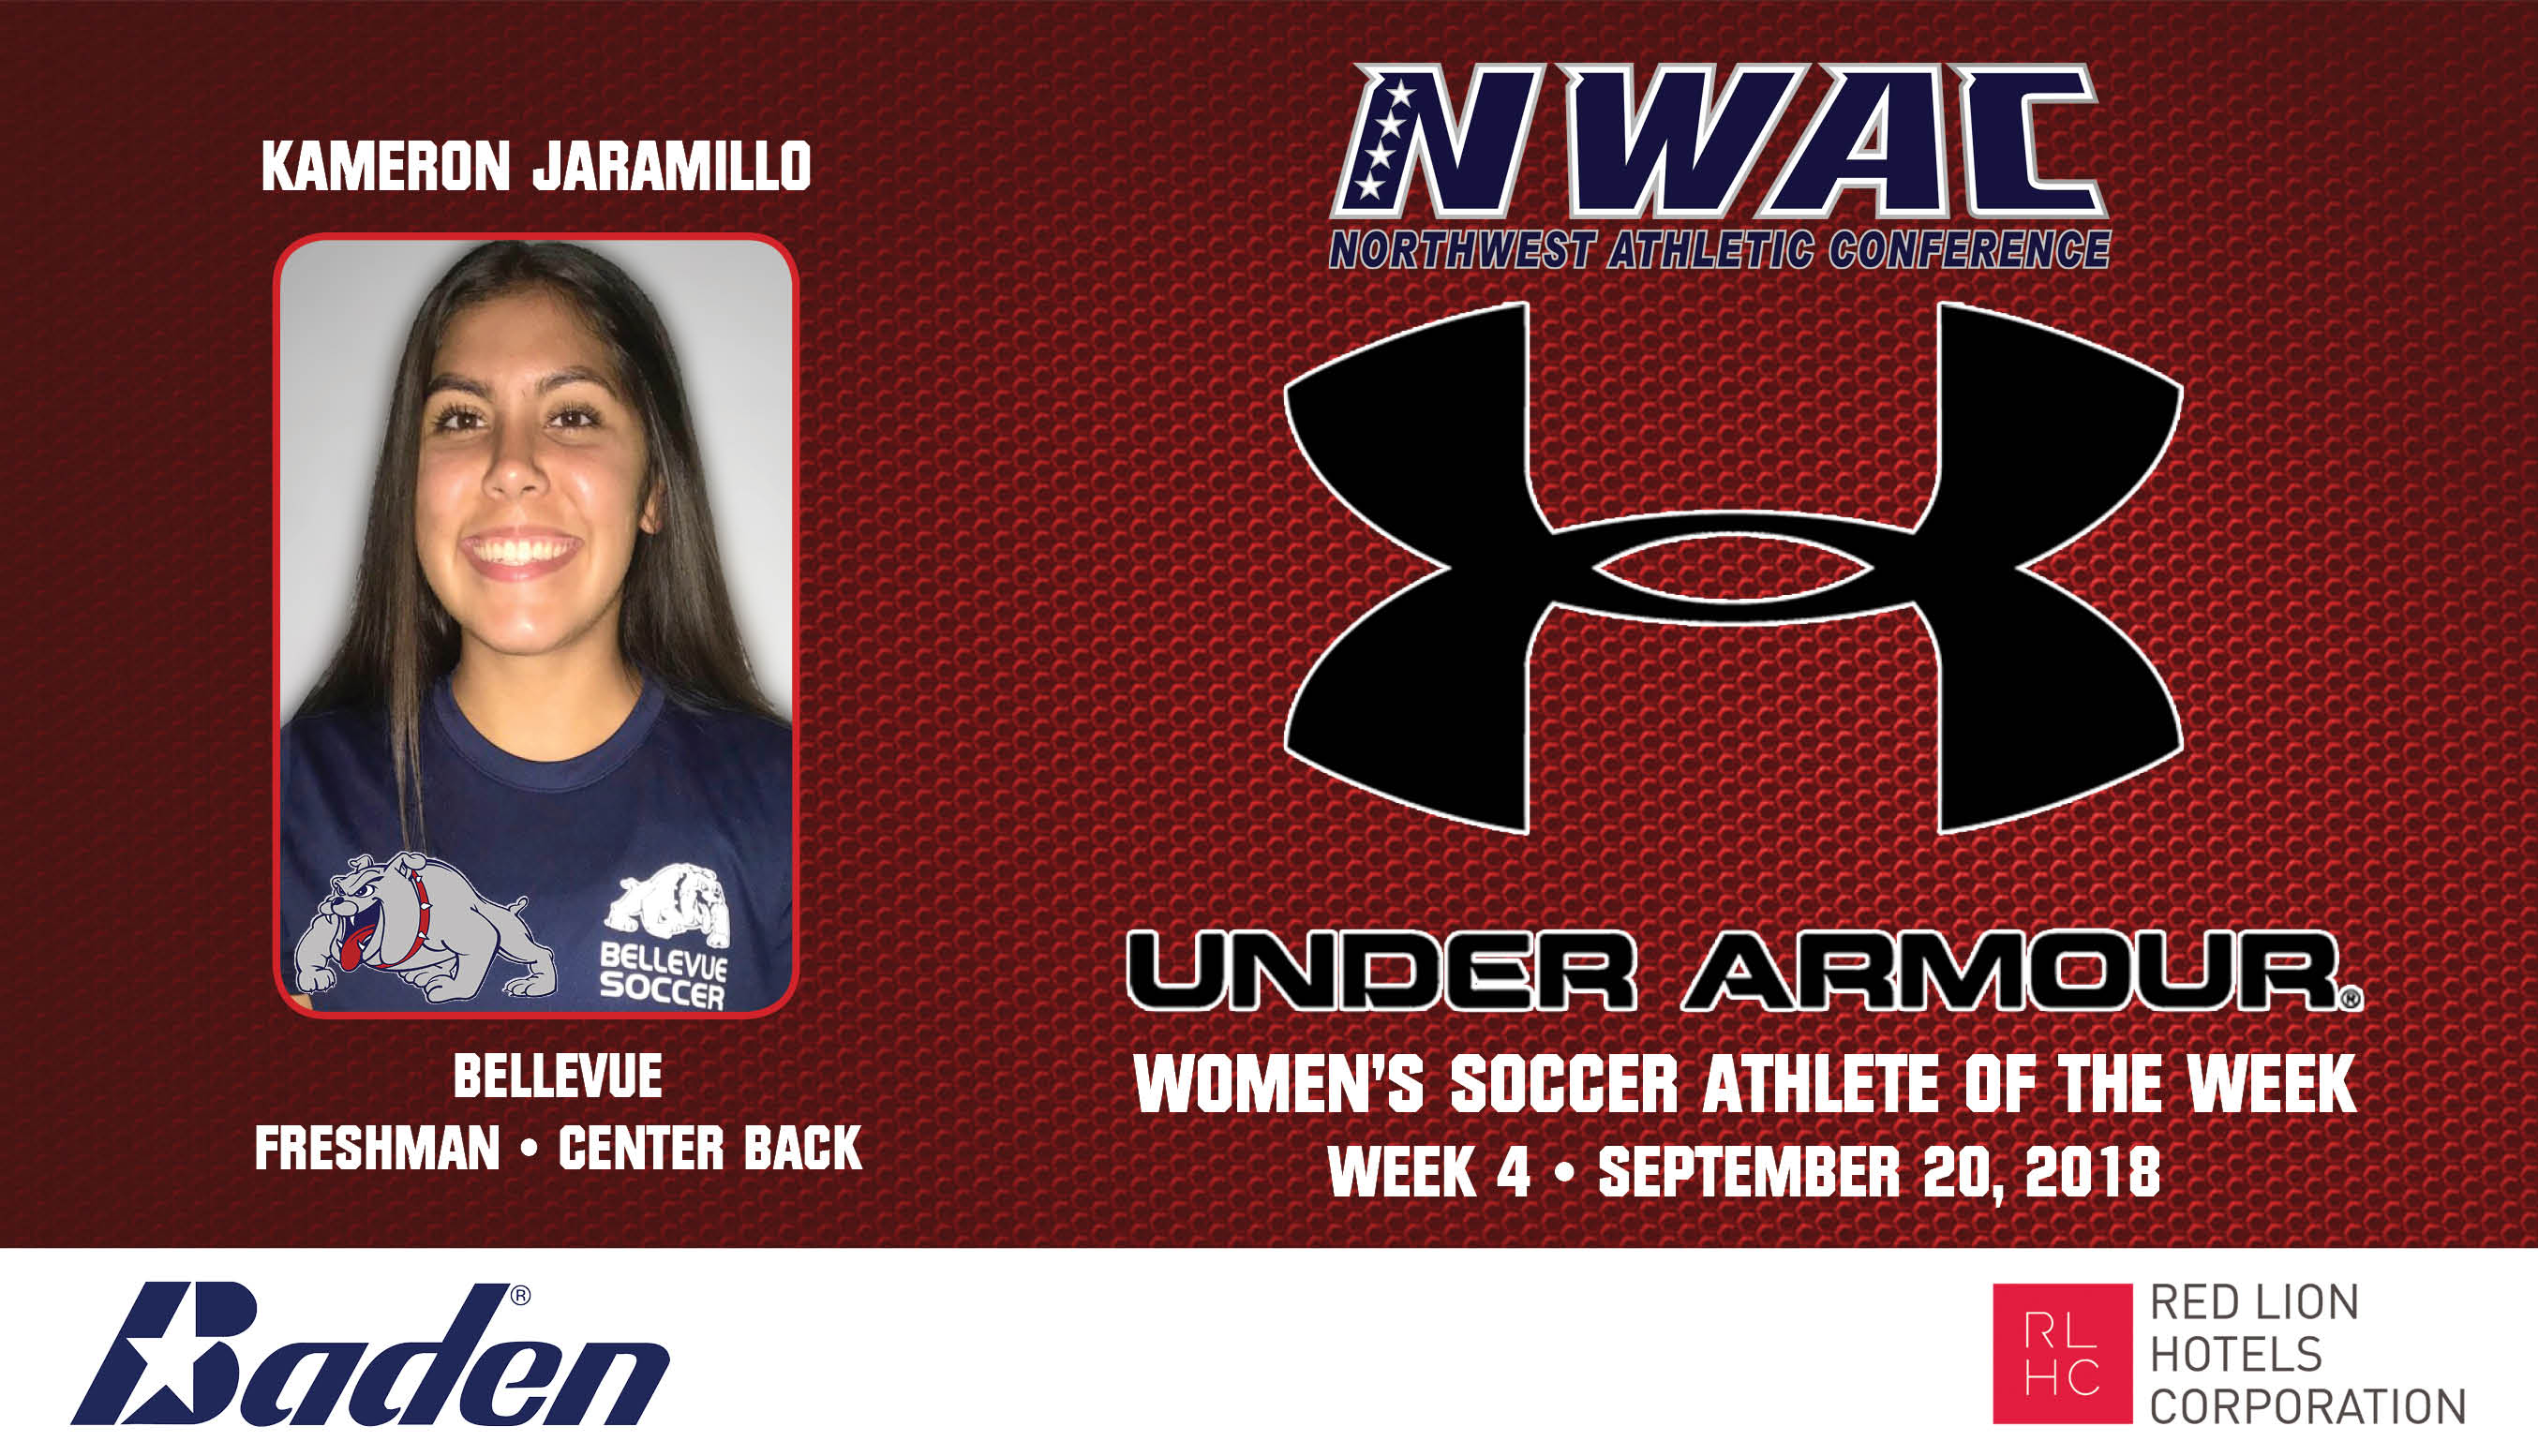 Kameron Jaramillo Armour Player of the Week graphic